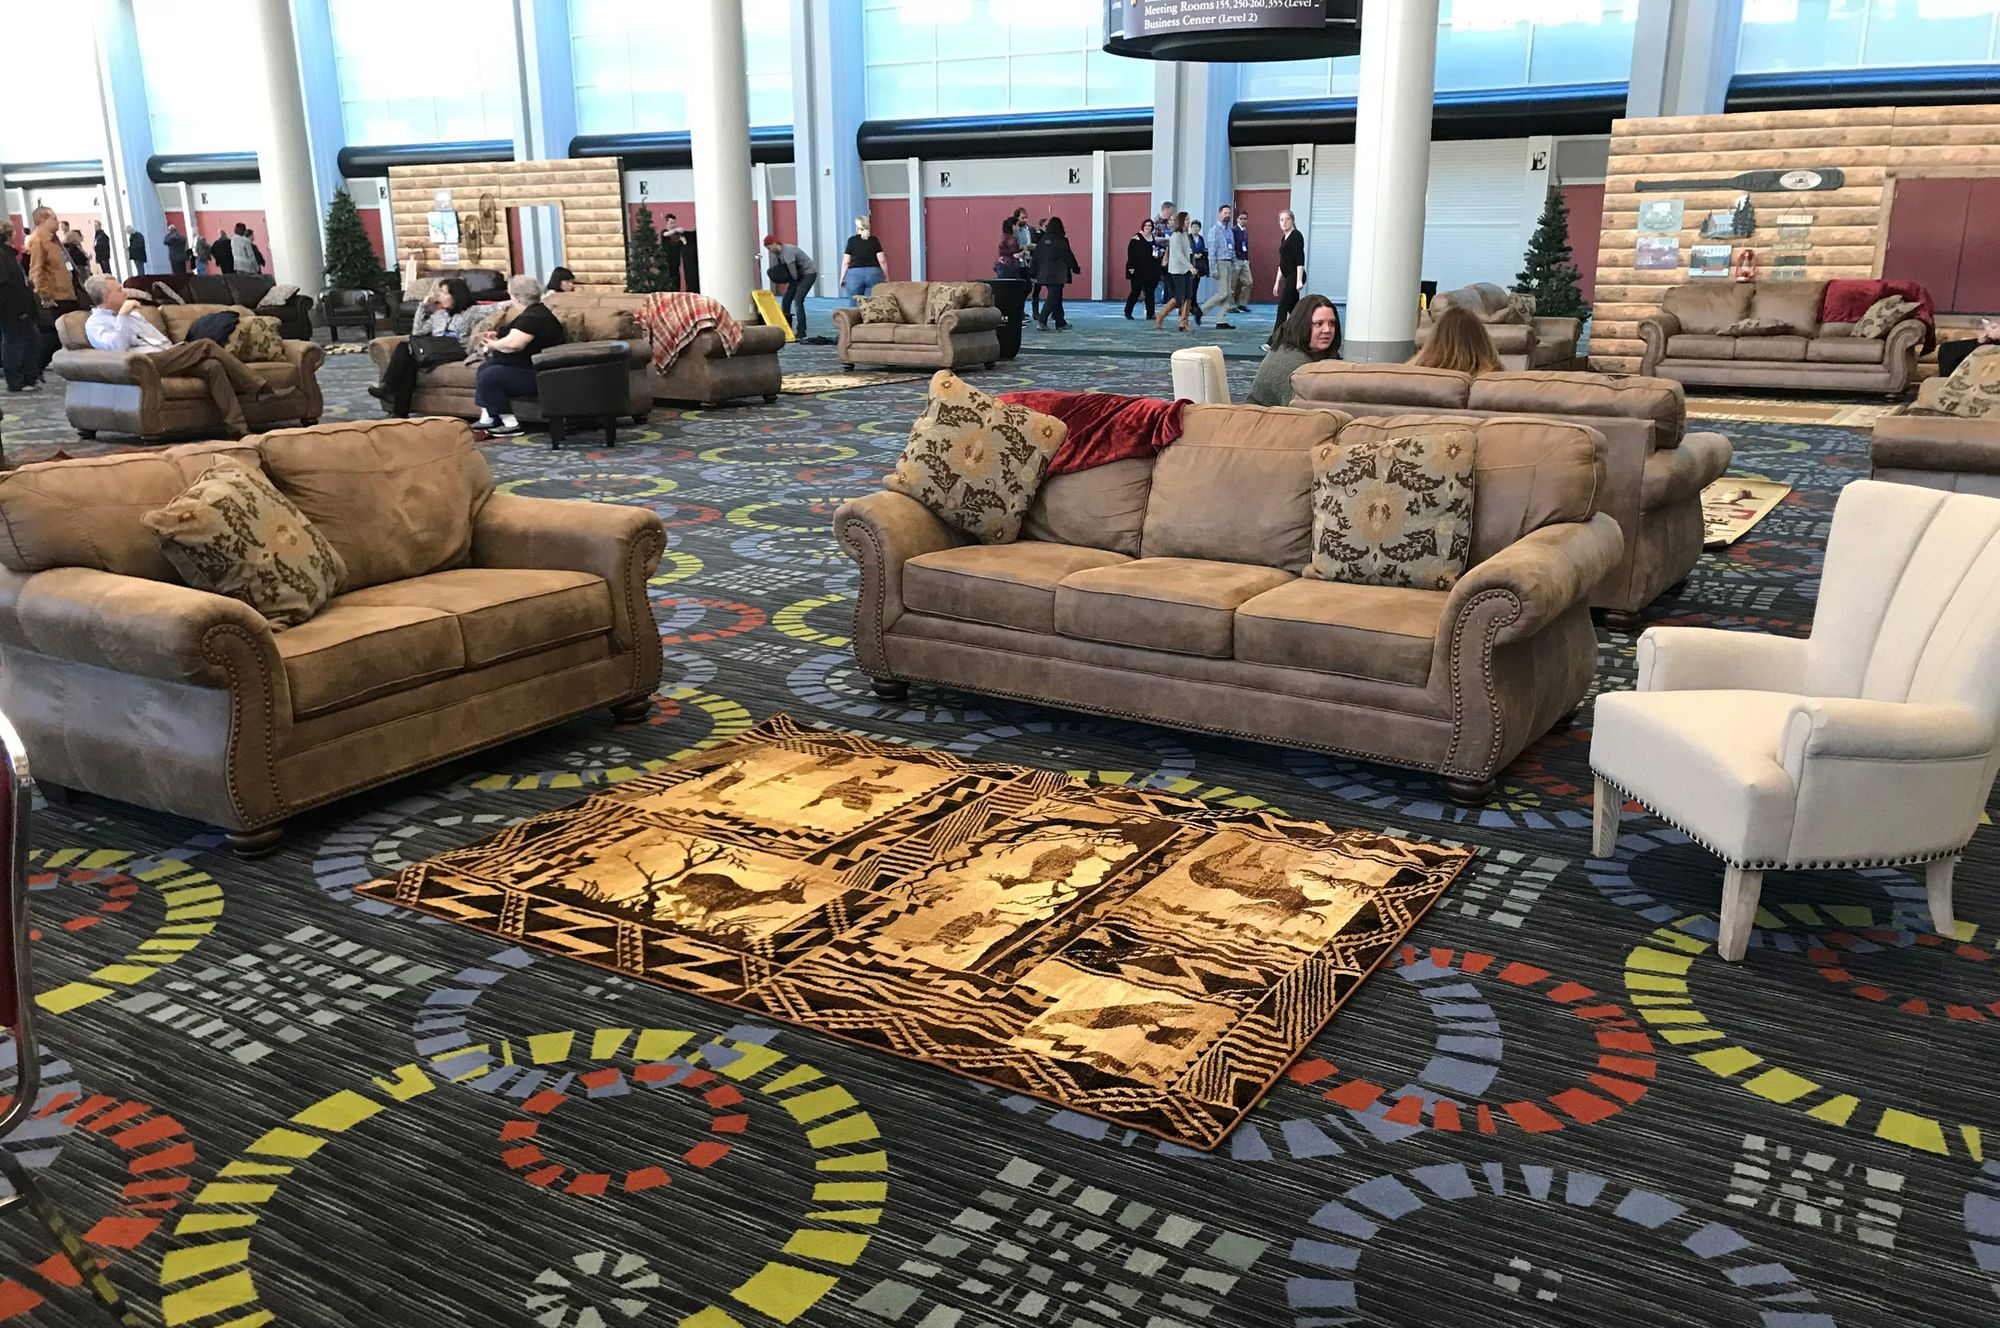 Higher_Education_User_Group_2018_Salt_Palace_Convention_Center_Salt_Lake_City_Utah_Relaxation_Area.jpg